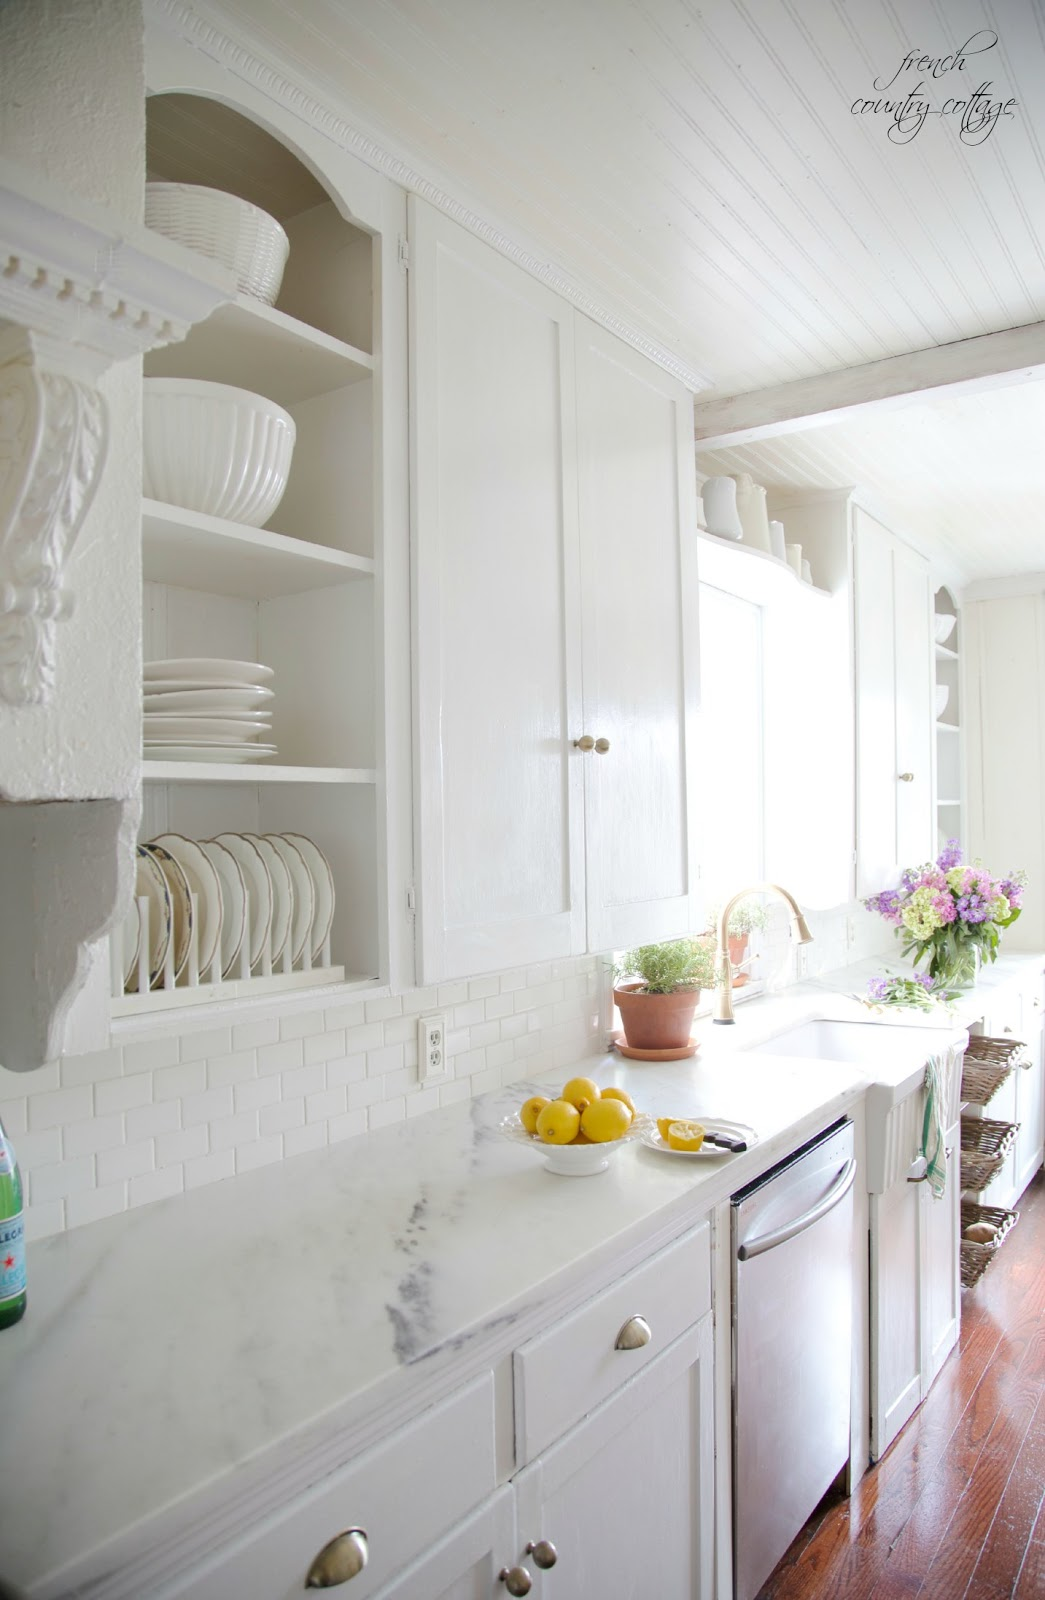 Why I Love The Beautiful Marble Countertops In Our Vintage Kitchen French Country Cottage